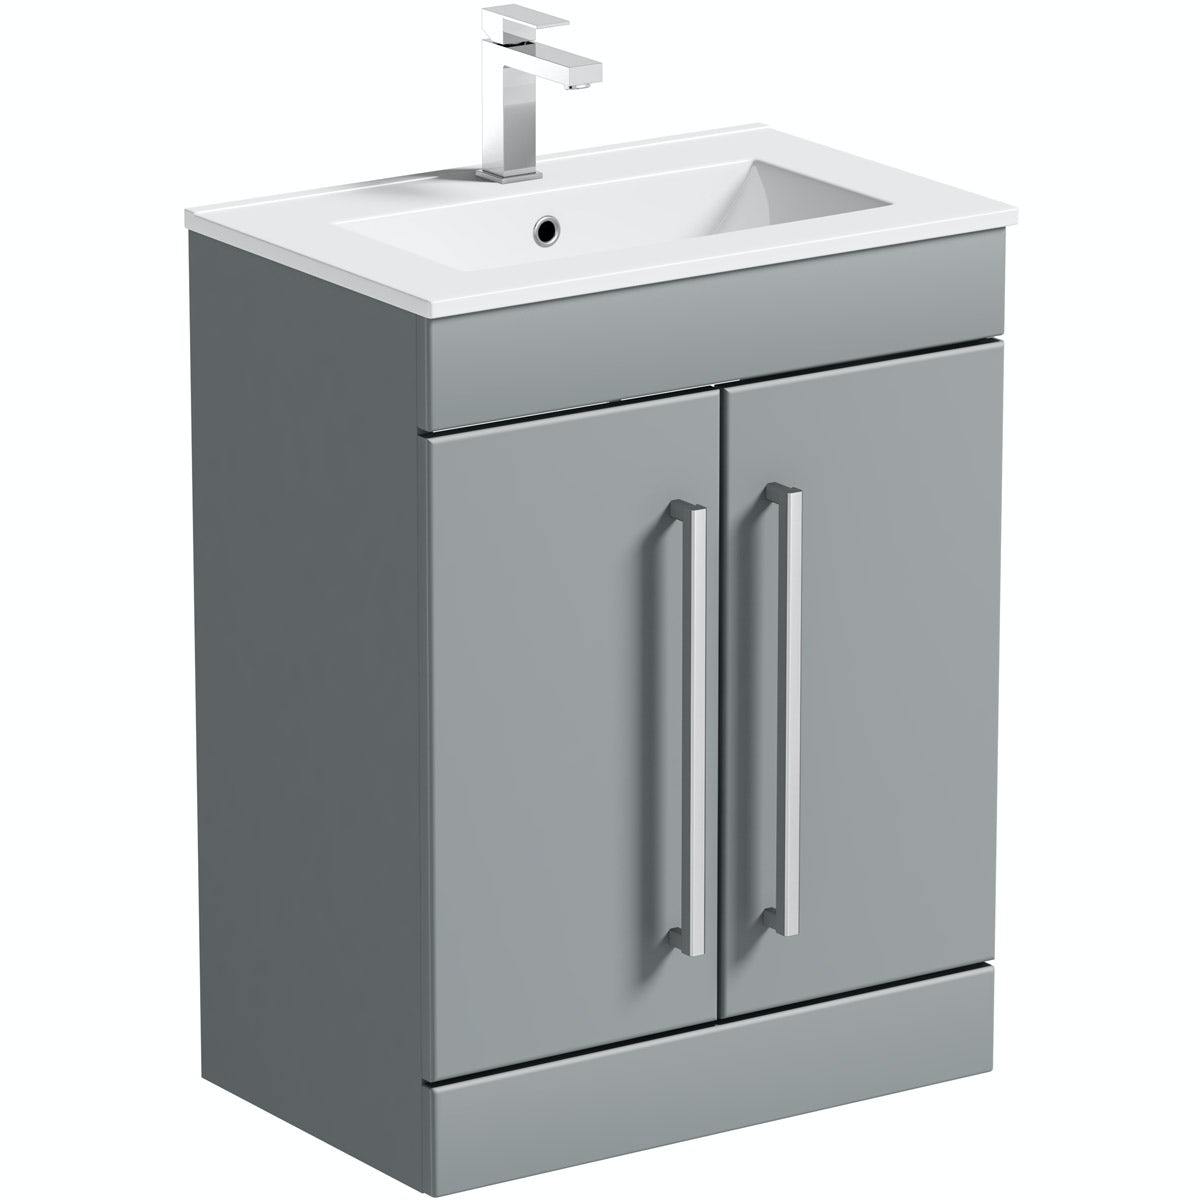 Orchard Derwent stone grey vanity door unit and basin 600mm